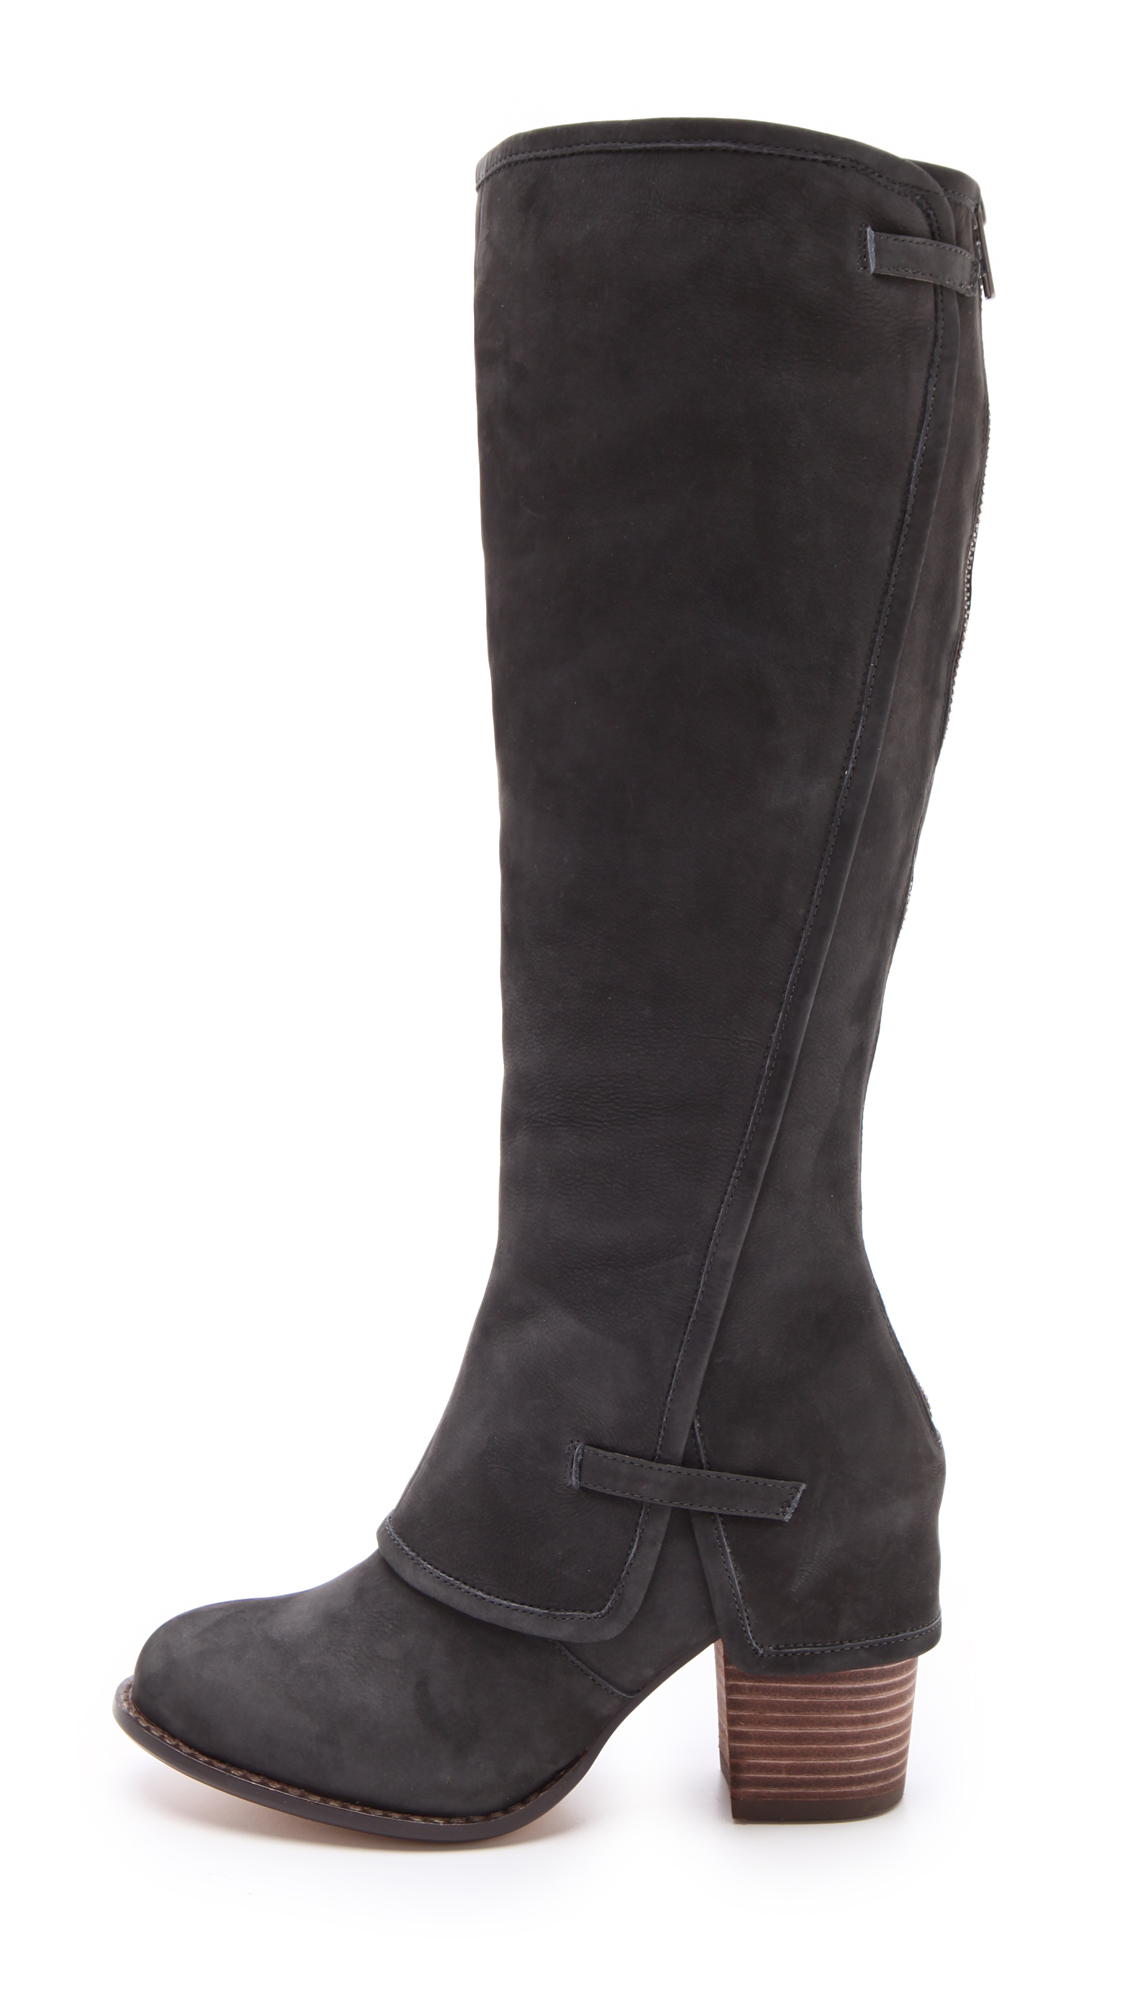 You searched for: knee high boots! Etsy is the home to thousands of handmade, vintage, and one-of-a-kind products and gifts related to your search. No matter what you're looking for or where you are in the world, our global marketplace of sellers can help you find unique and affordable options. Let's get started!